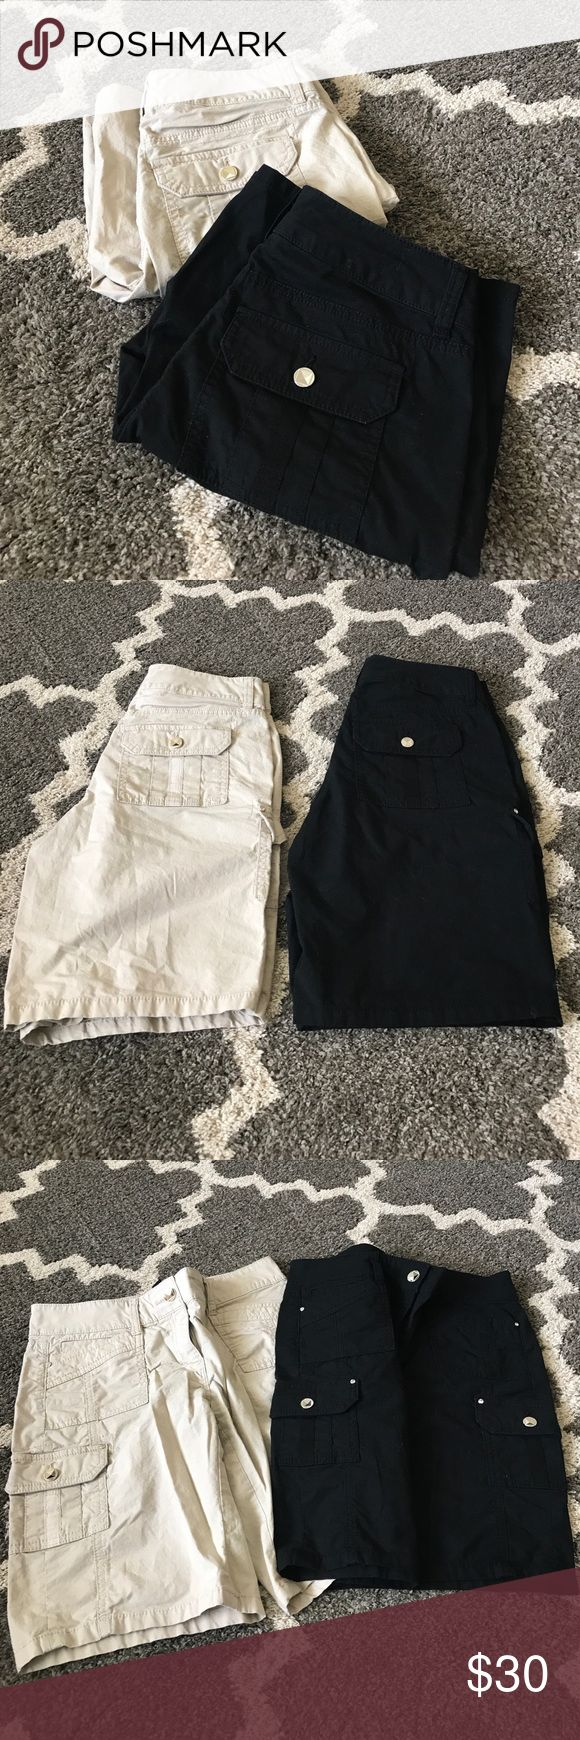 White House black market shorts White House black market shorts, Bermuda length, price is for both, they have button detailing silver on the black and gold on the tan White House Black Market Shorts Bermudas